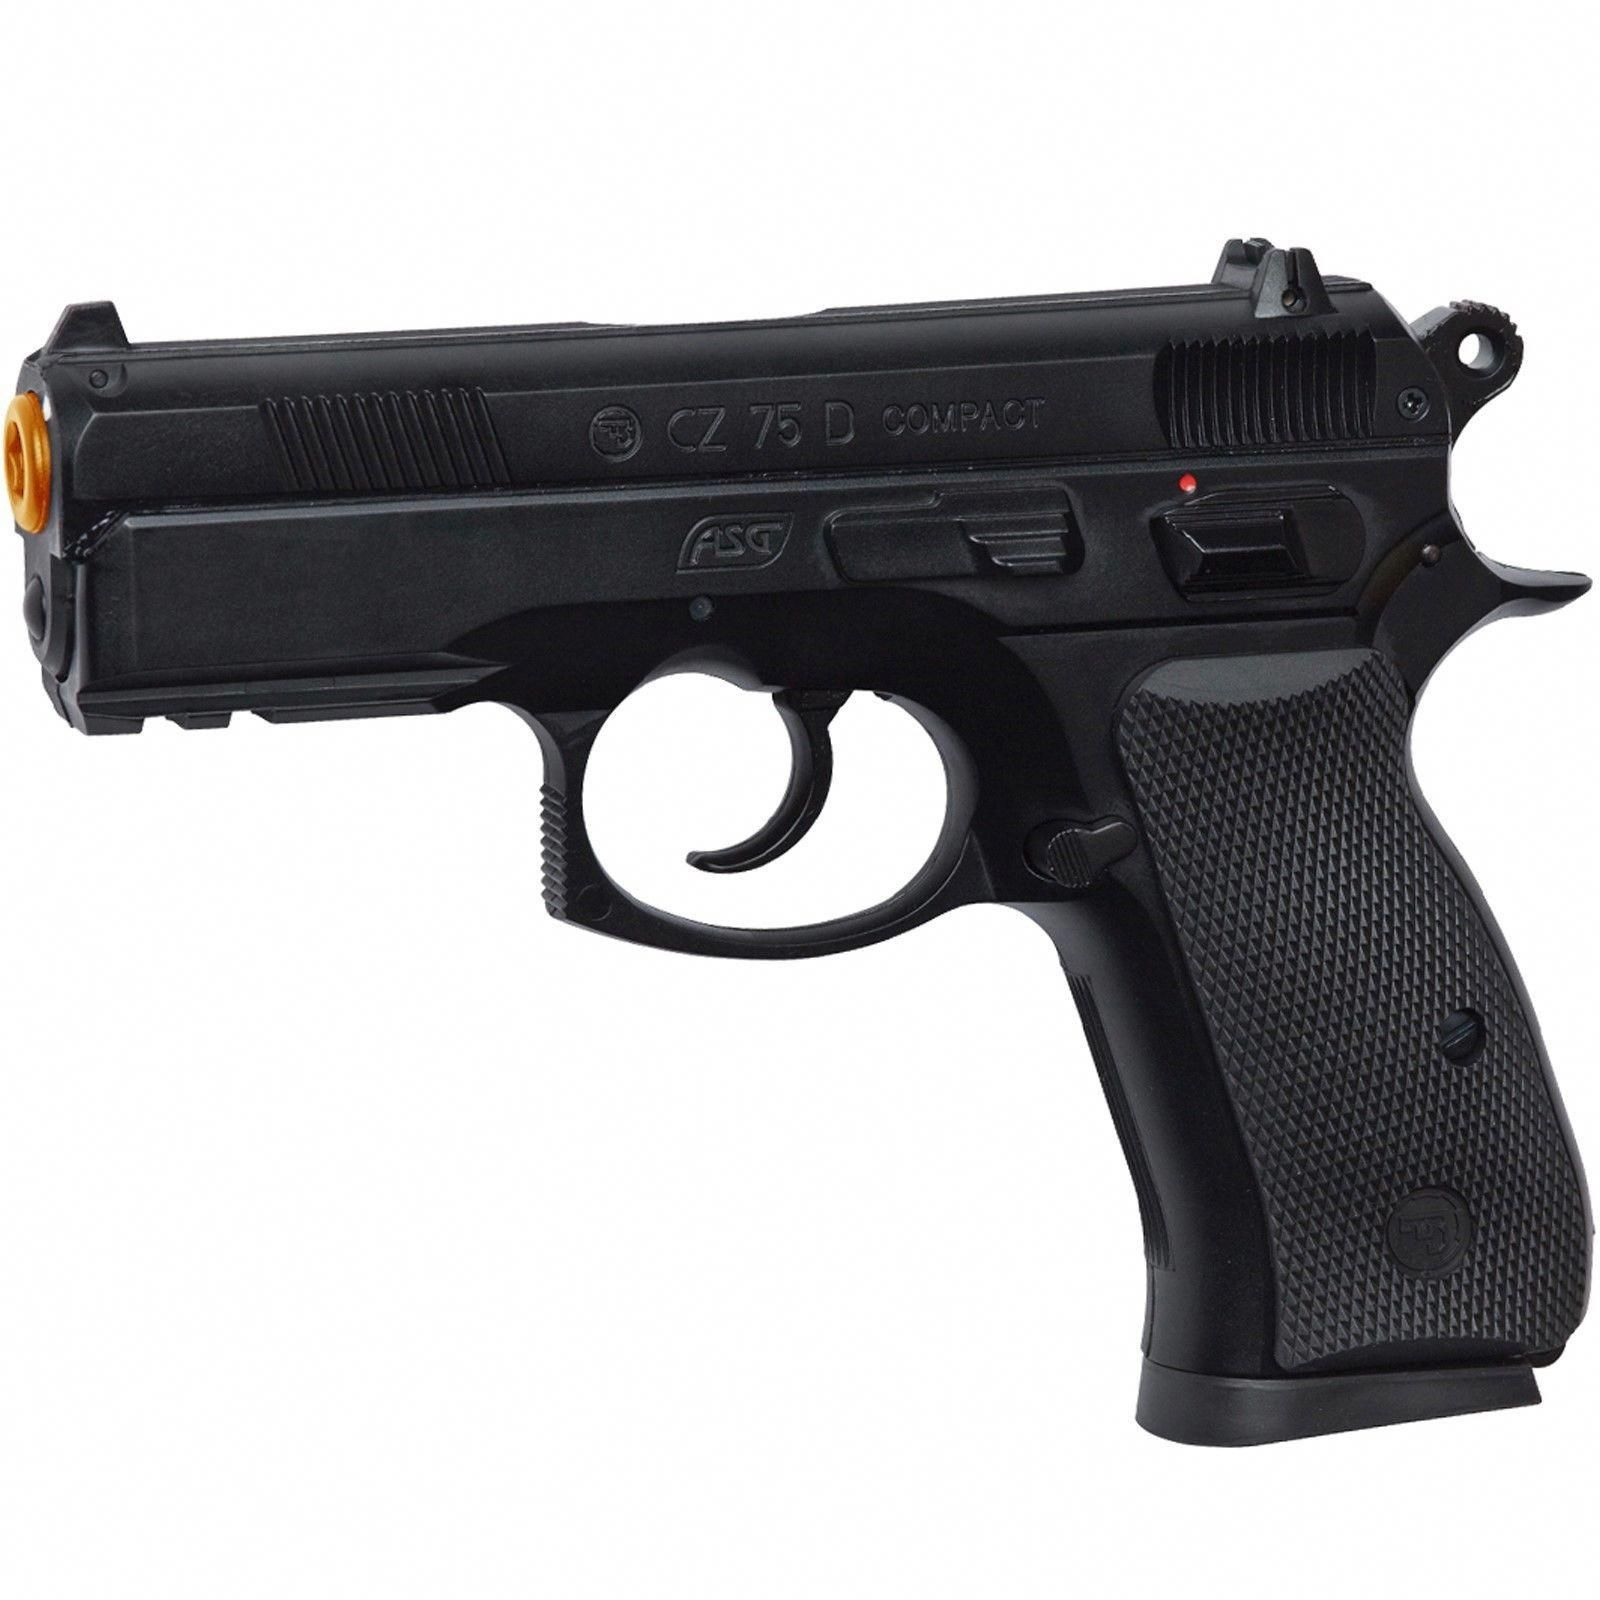 Other Gas Airsoft Guns 31685 Asg Licensed Cz 75D Compact Co2 Polymer Non BlowBack Airsoft Pistol 50064  BUY IT NOW ONLY 4499 on